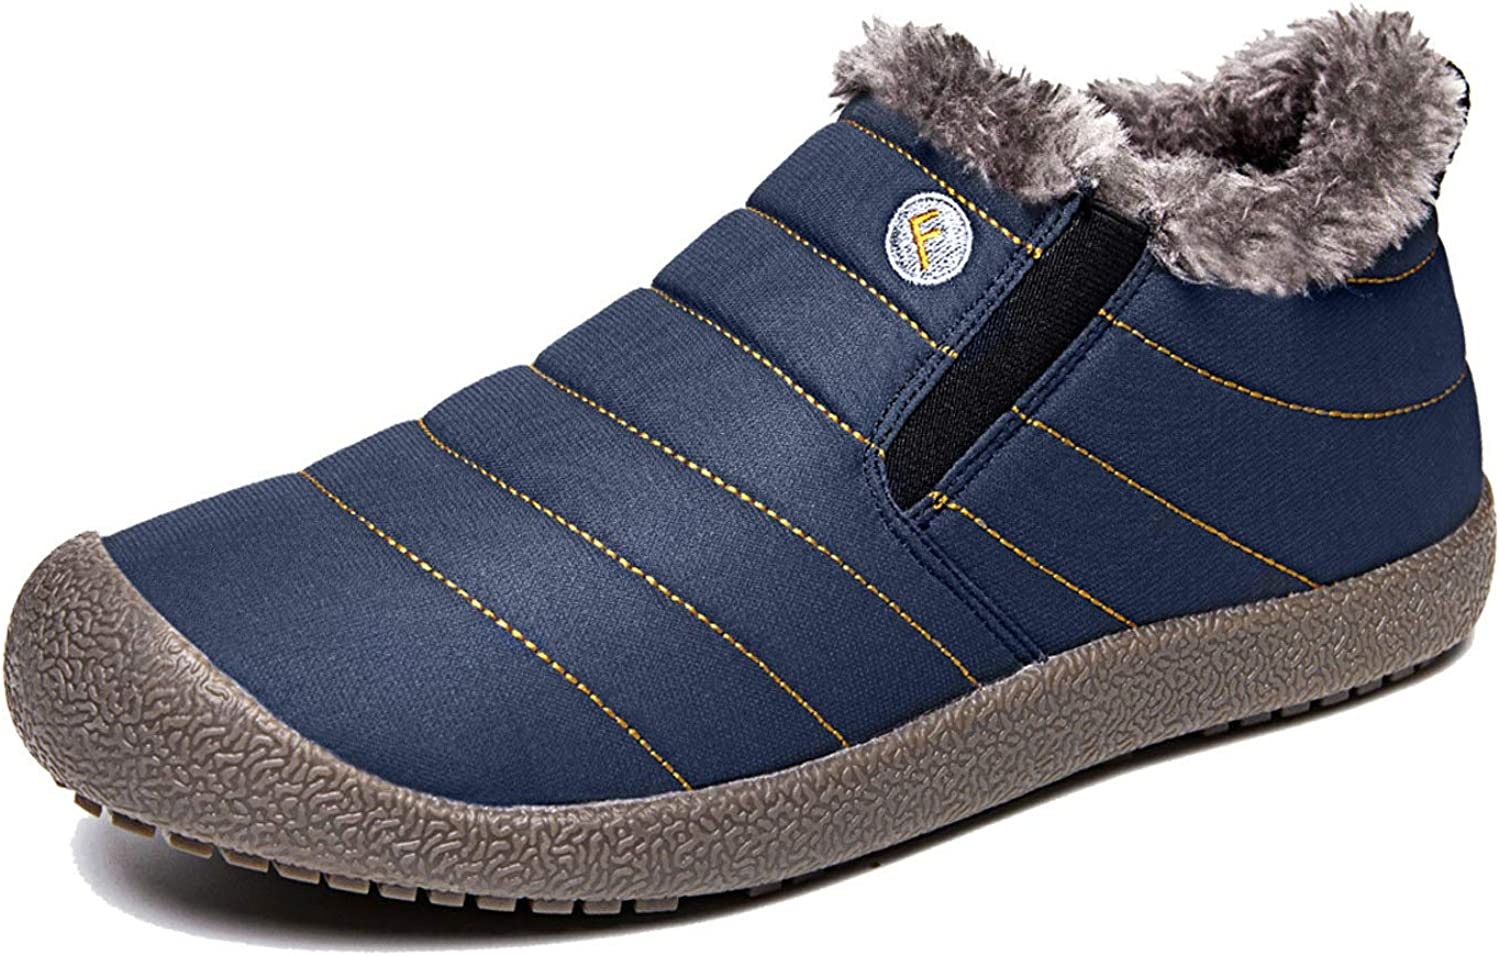 EXEBLUE Enly Winter Snow Boots Slip-on